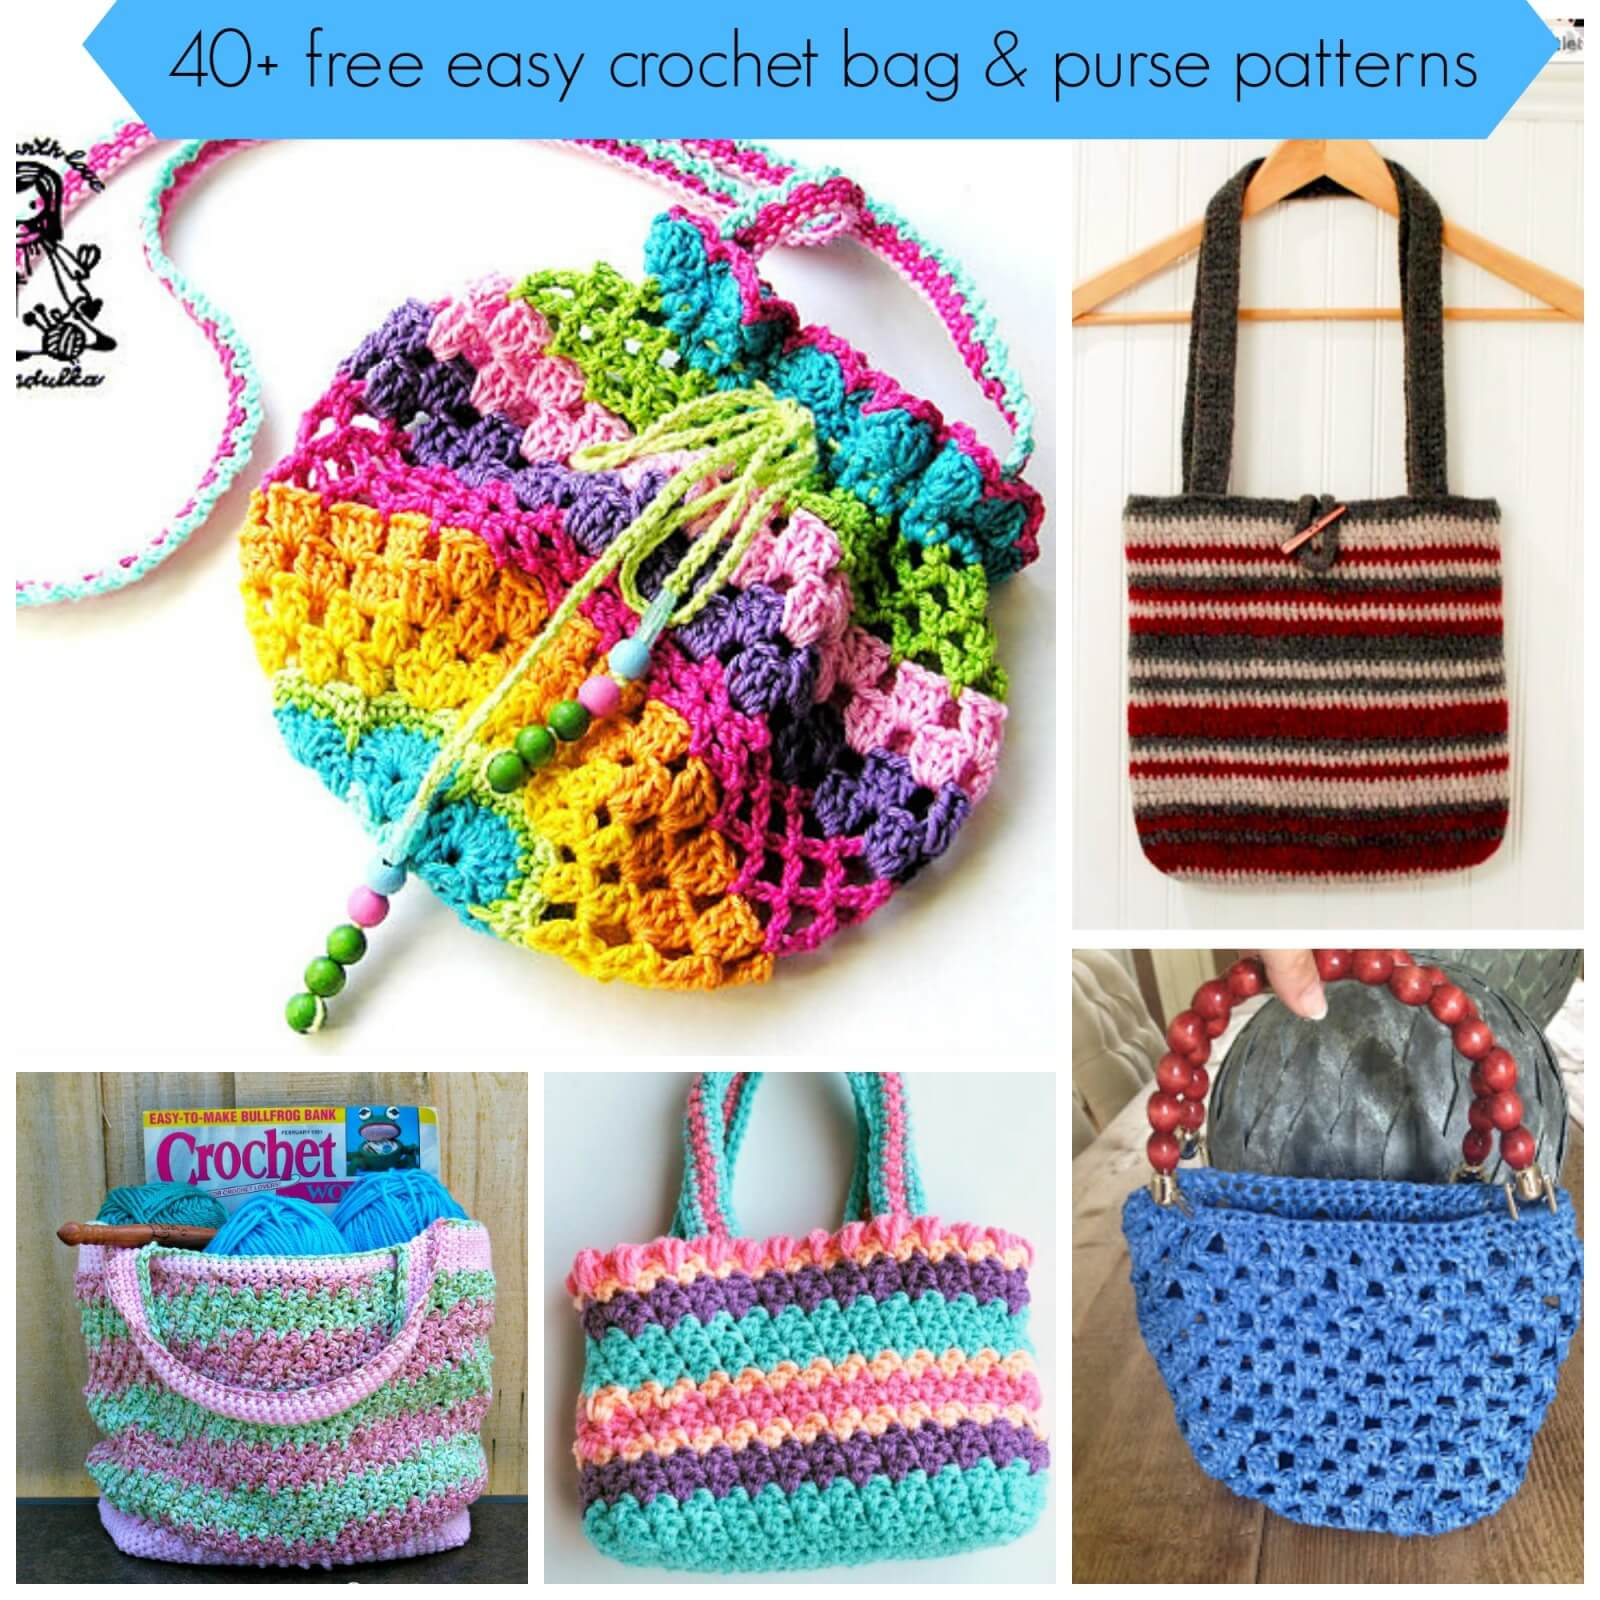 Free Crochet Patterns For Purses : ... Photos - Free Crochet Purse Patterns Easy Vintage Patterns For Purses